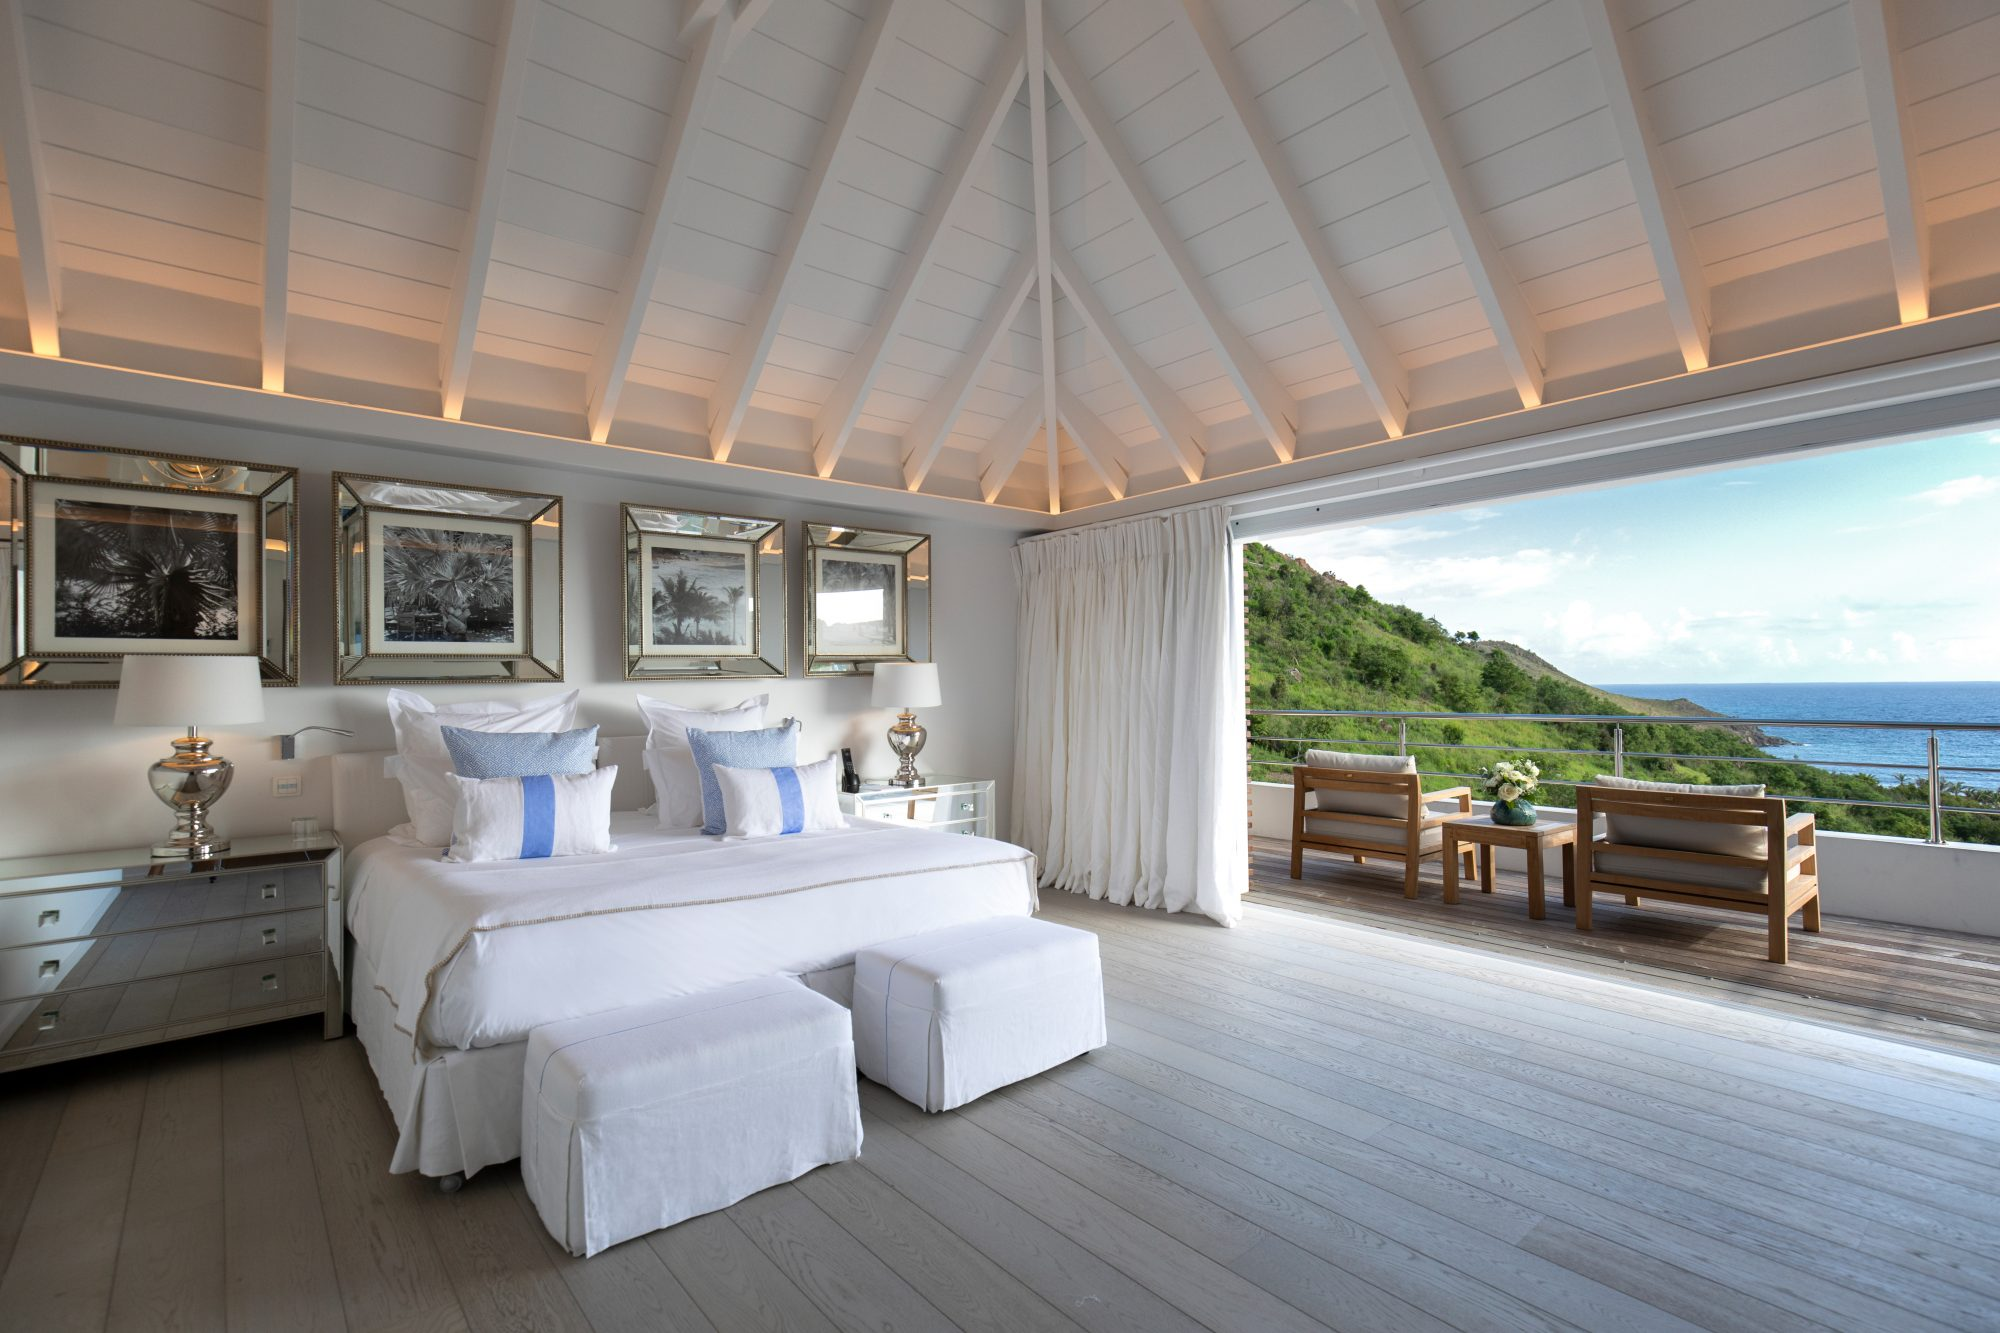 The idyllic French-Caribbean island of St. Barths might have been well and truly discovered by the jetset, but there are still a handful of lesser-known gems to uncover, like this swanky hilltop hideaway set high above Toiny Bay. Reopened in October 2018